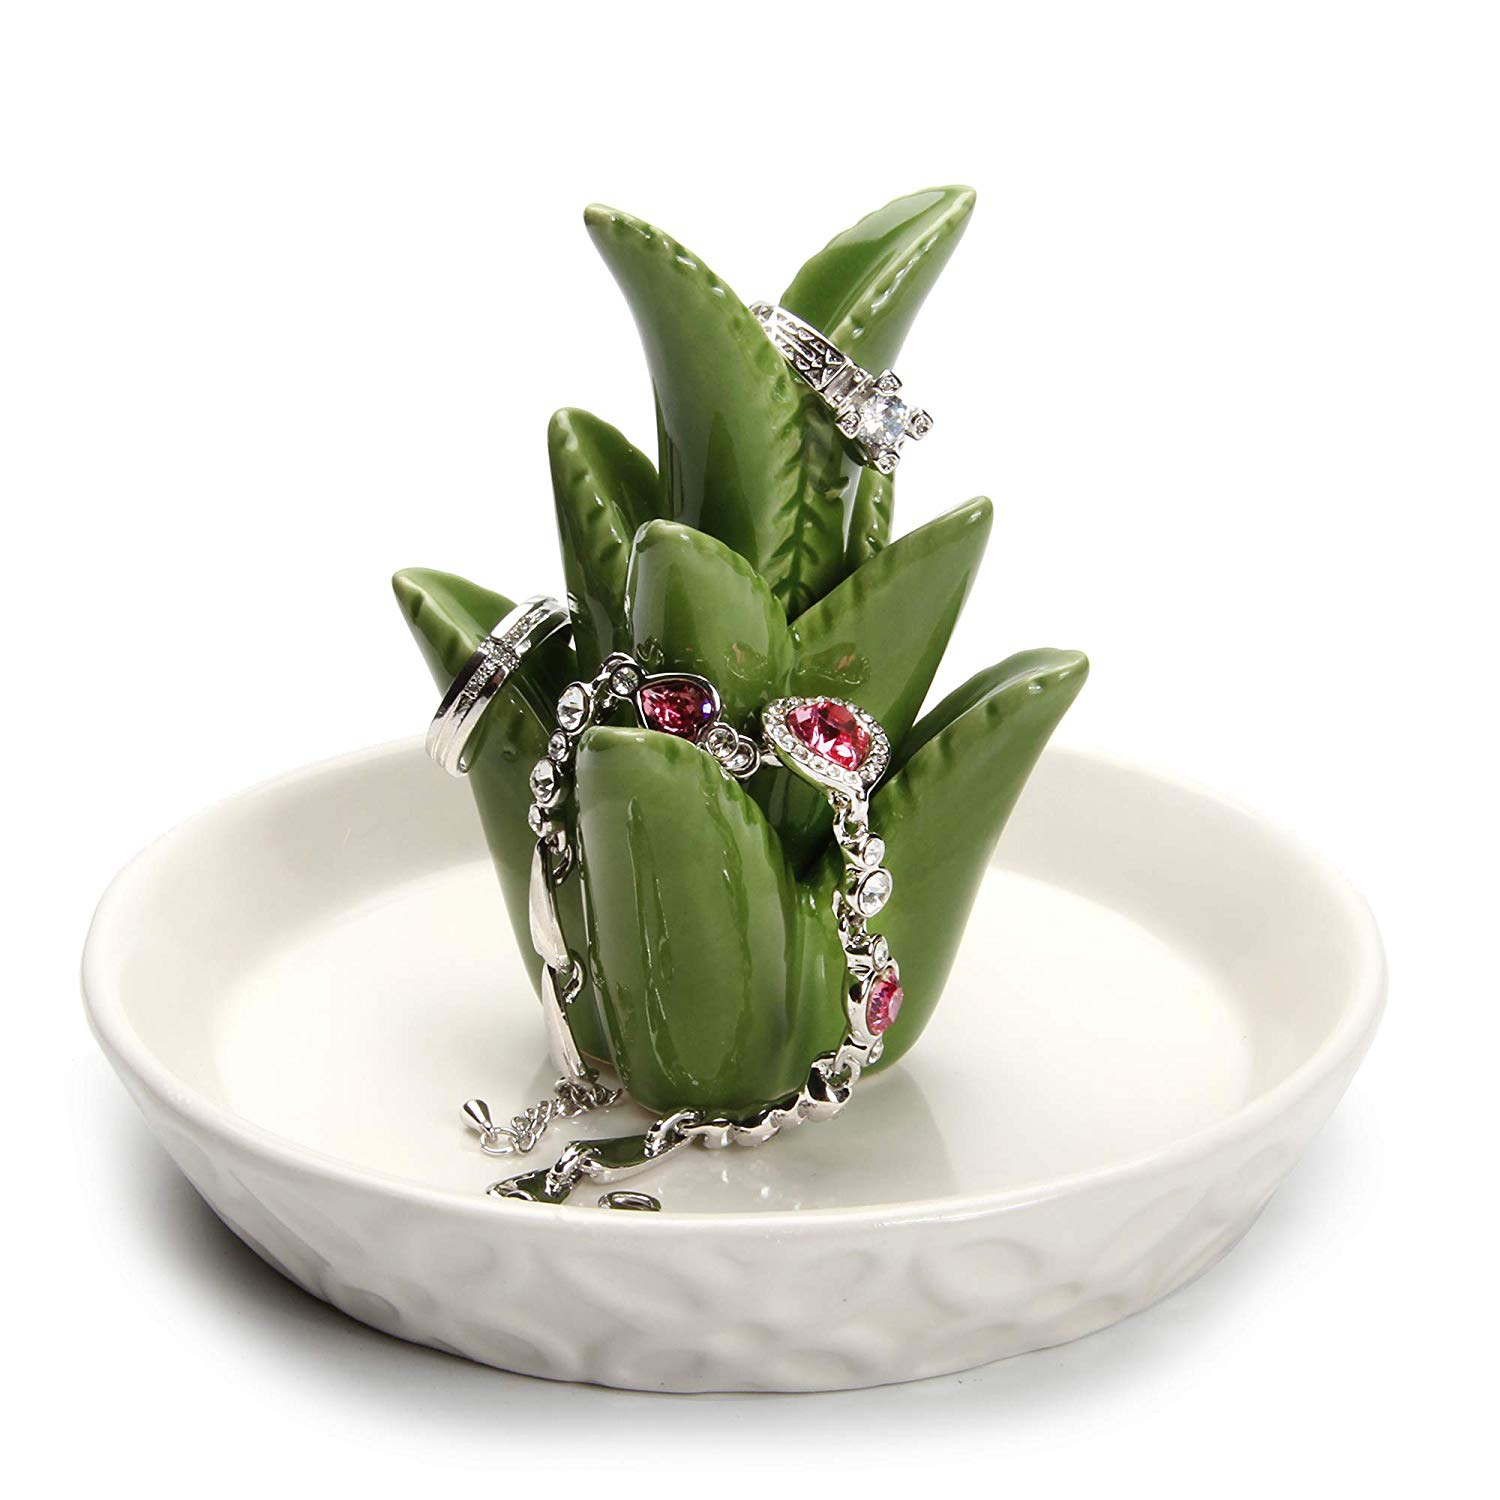 13th wedding anniversary gift ideas - Porcelain jewelry tray